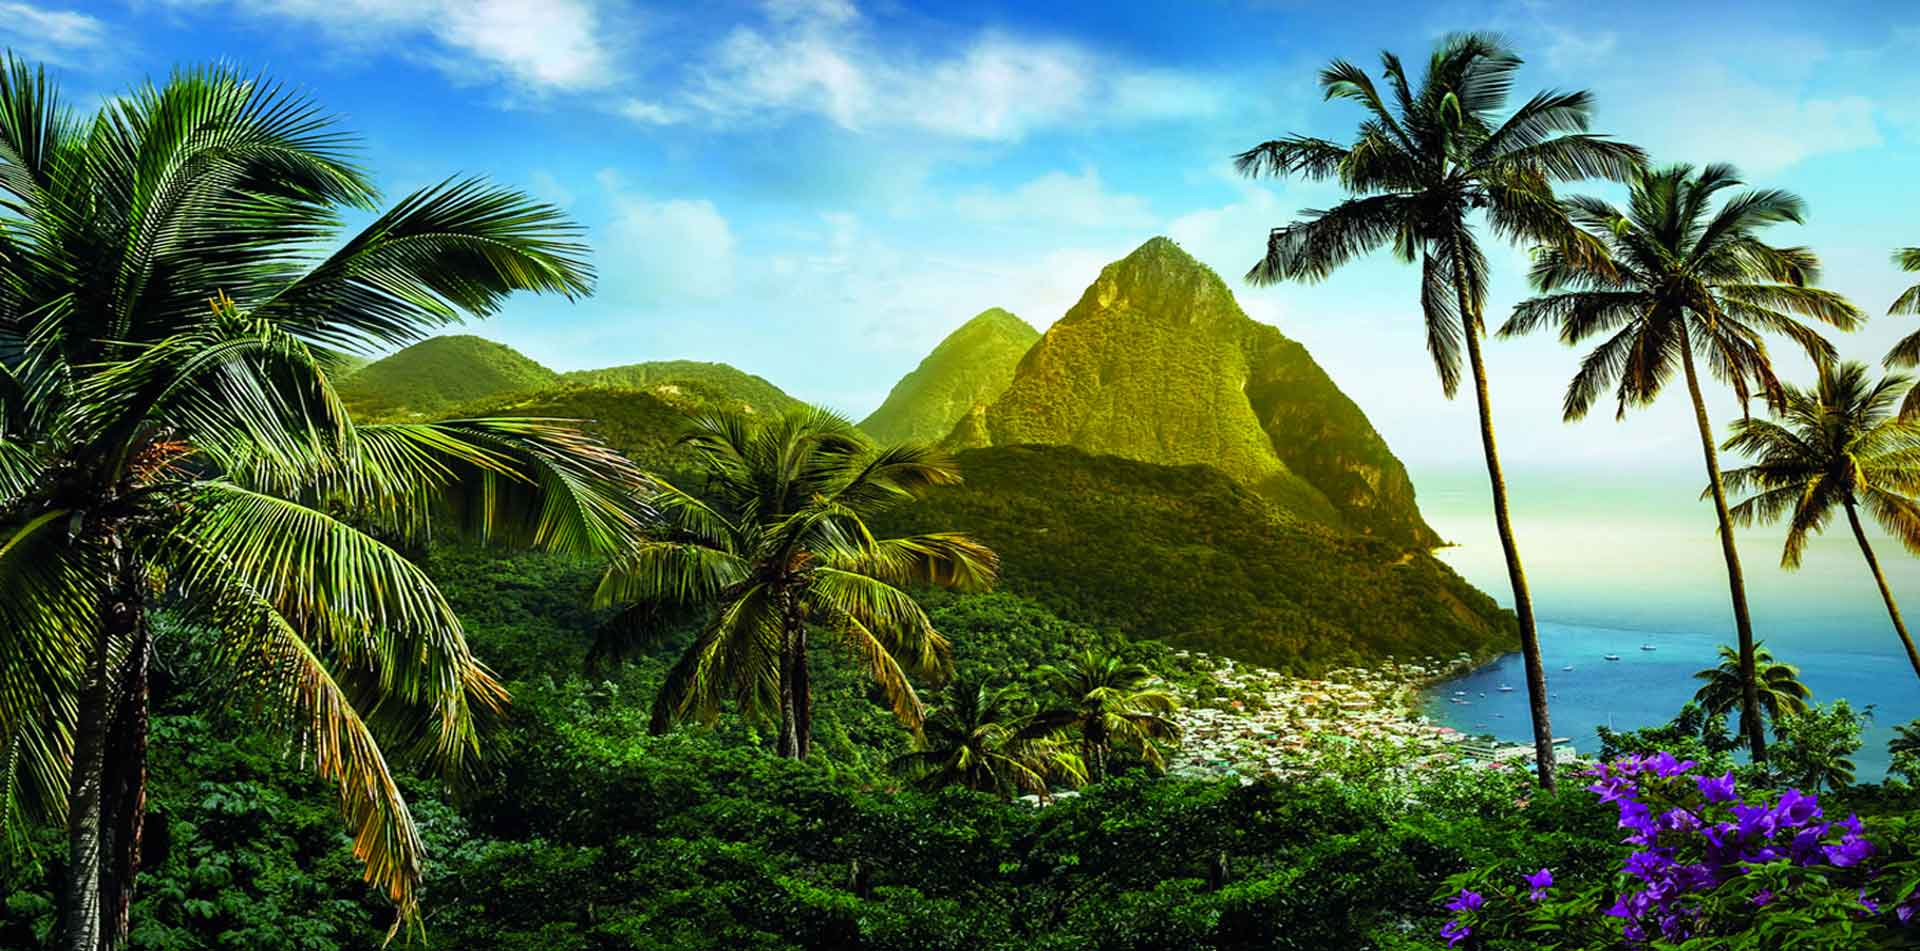 Latin America Caribbean St. Lucia scenic Pitons lush mountains tropical landscape - luxury vacation destinations